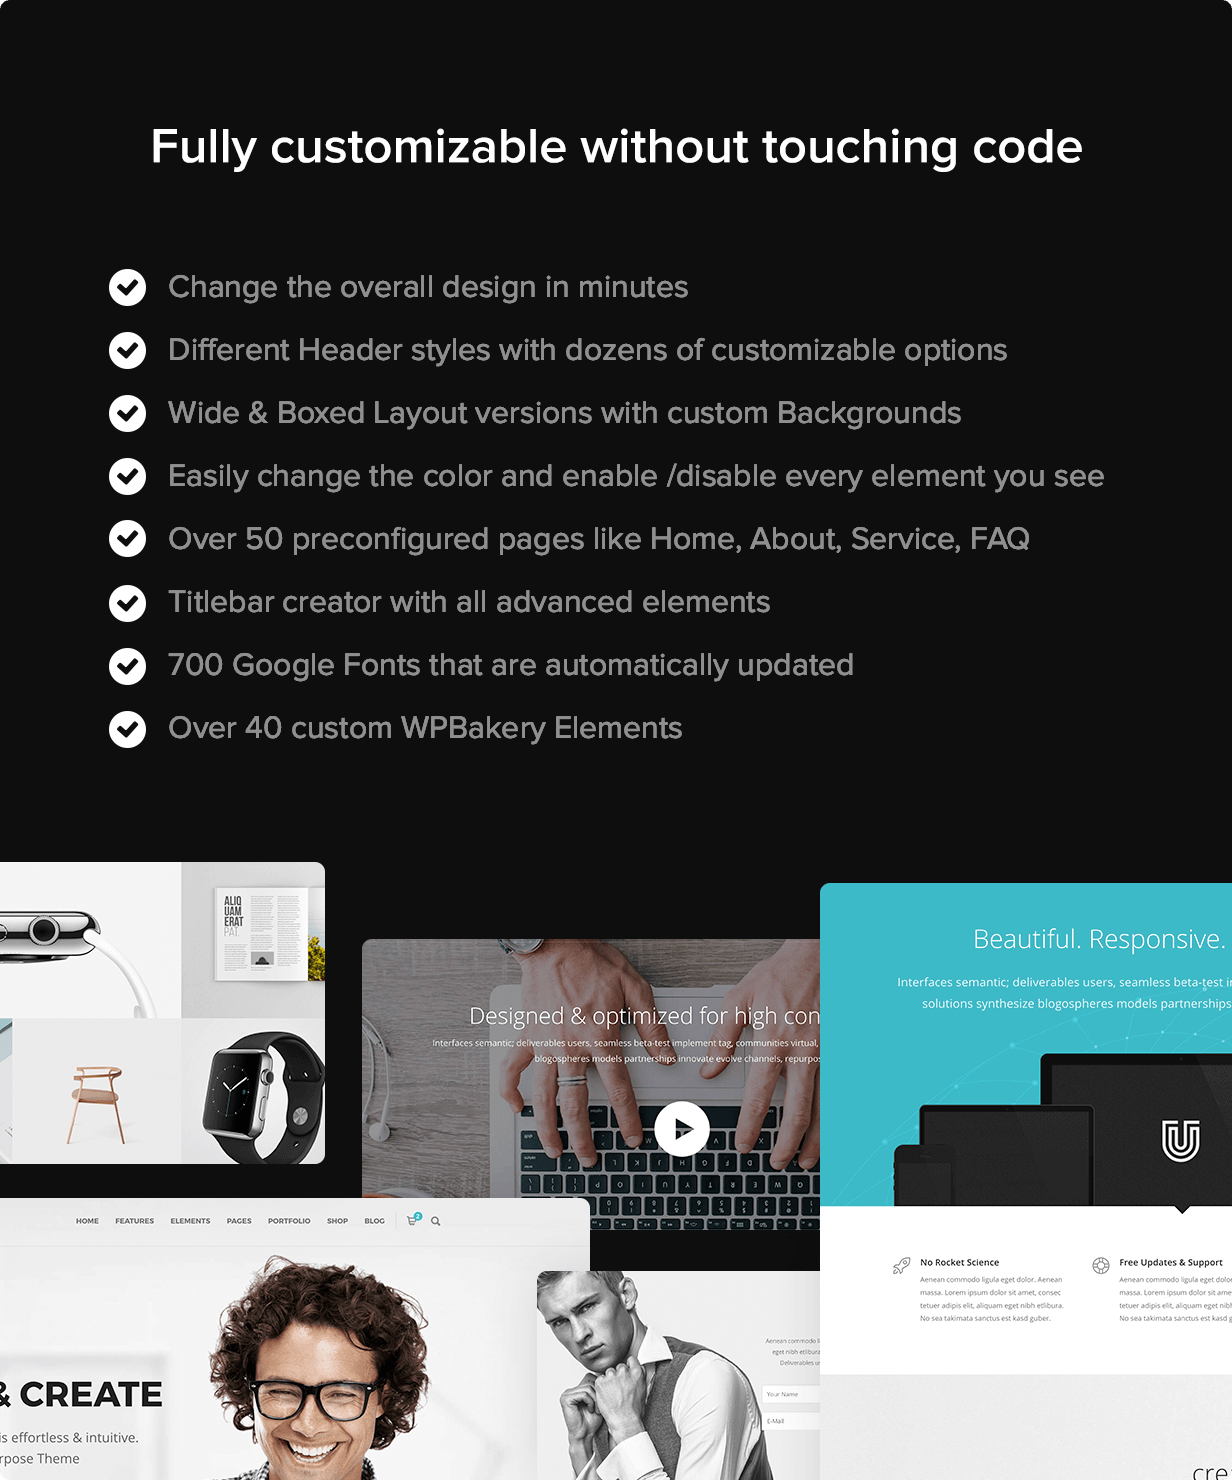 unicon customizable - Unicon | Design-Driven Multipurpose Theme